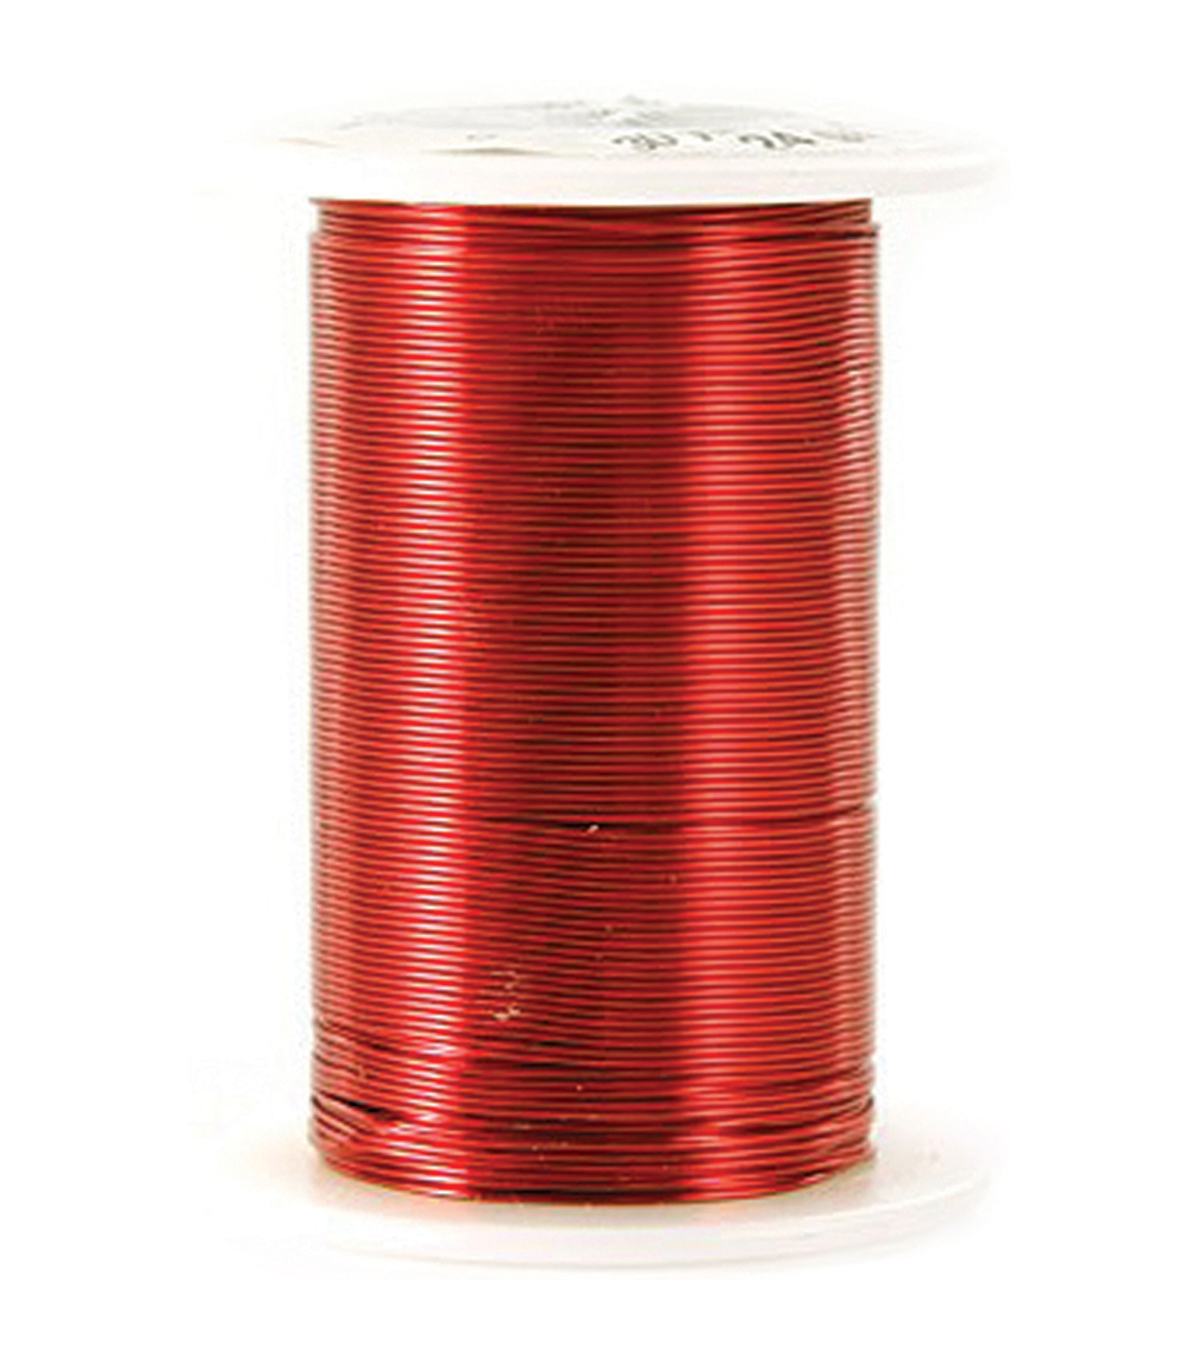 24 Gauge Wire 25 Yards/Pkg-Red